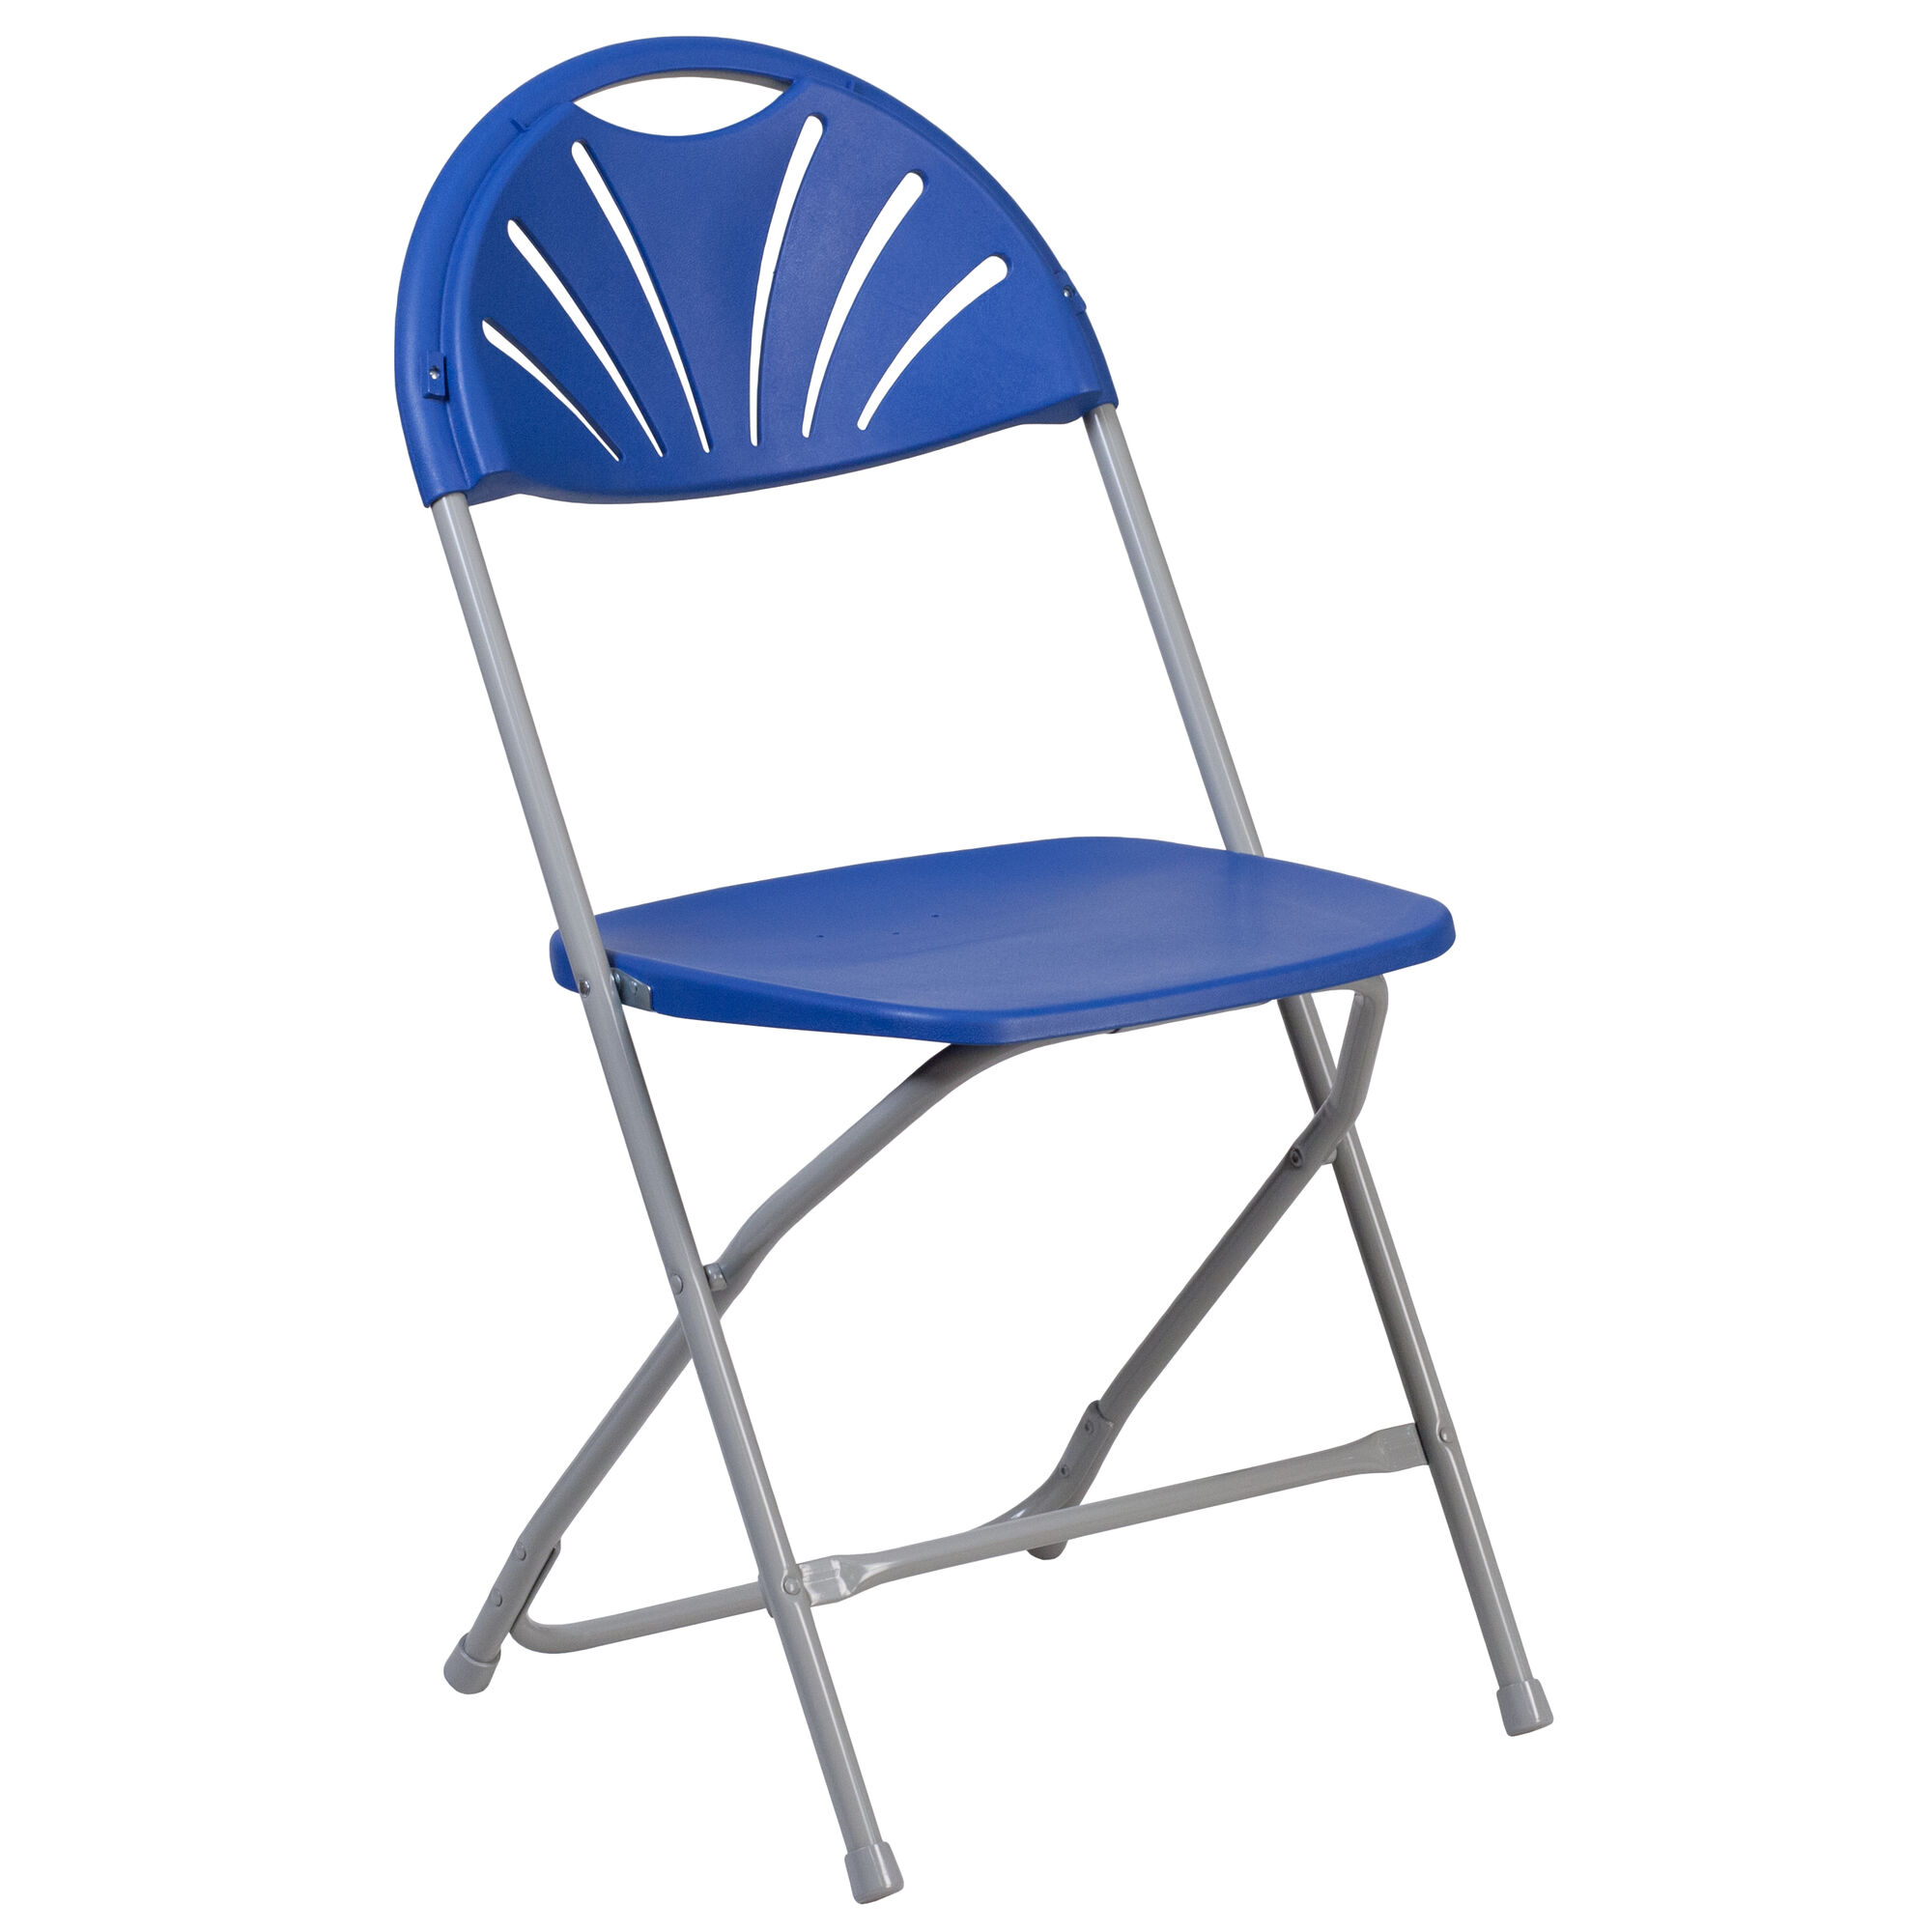 Excellent Hercules Series 650 Lb Capacity Blue Plastic Fan Back Folding Chair Ocoug Best Dining Table And Chair Ideas Images Ocougorg